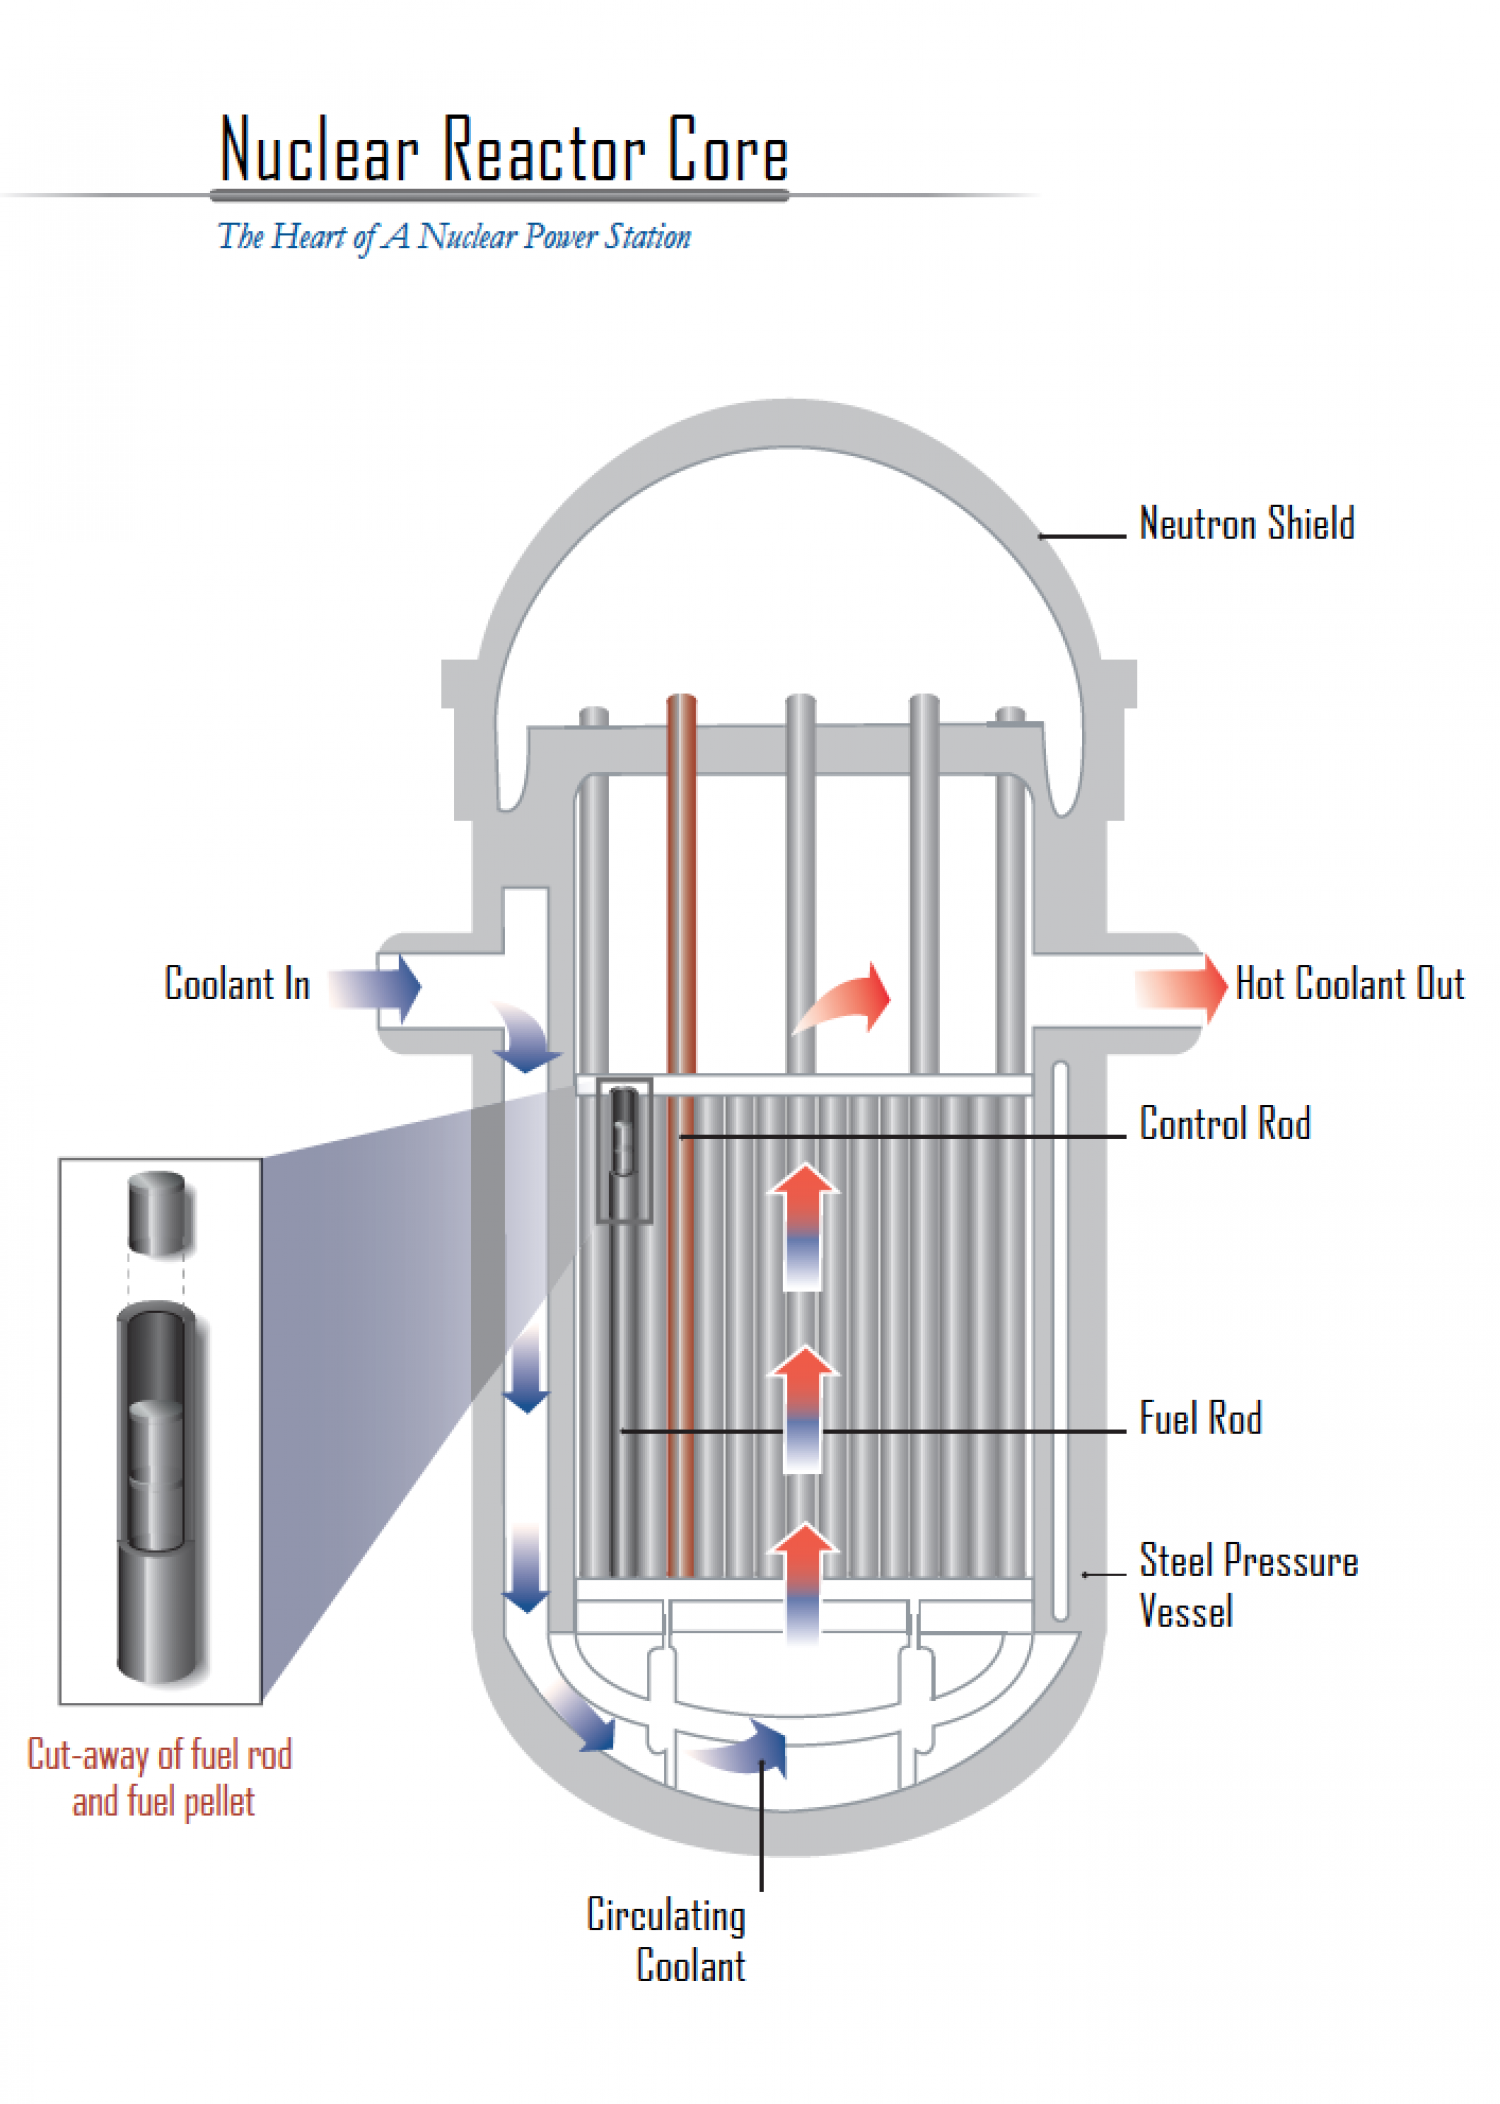 Nuclear reactor core schematic visual nuclear reactor core schematic infographic ccuart Image collections